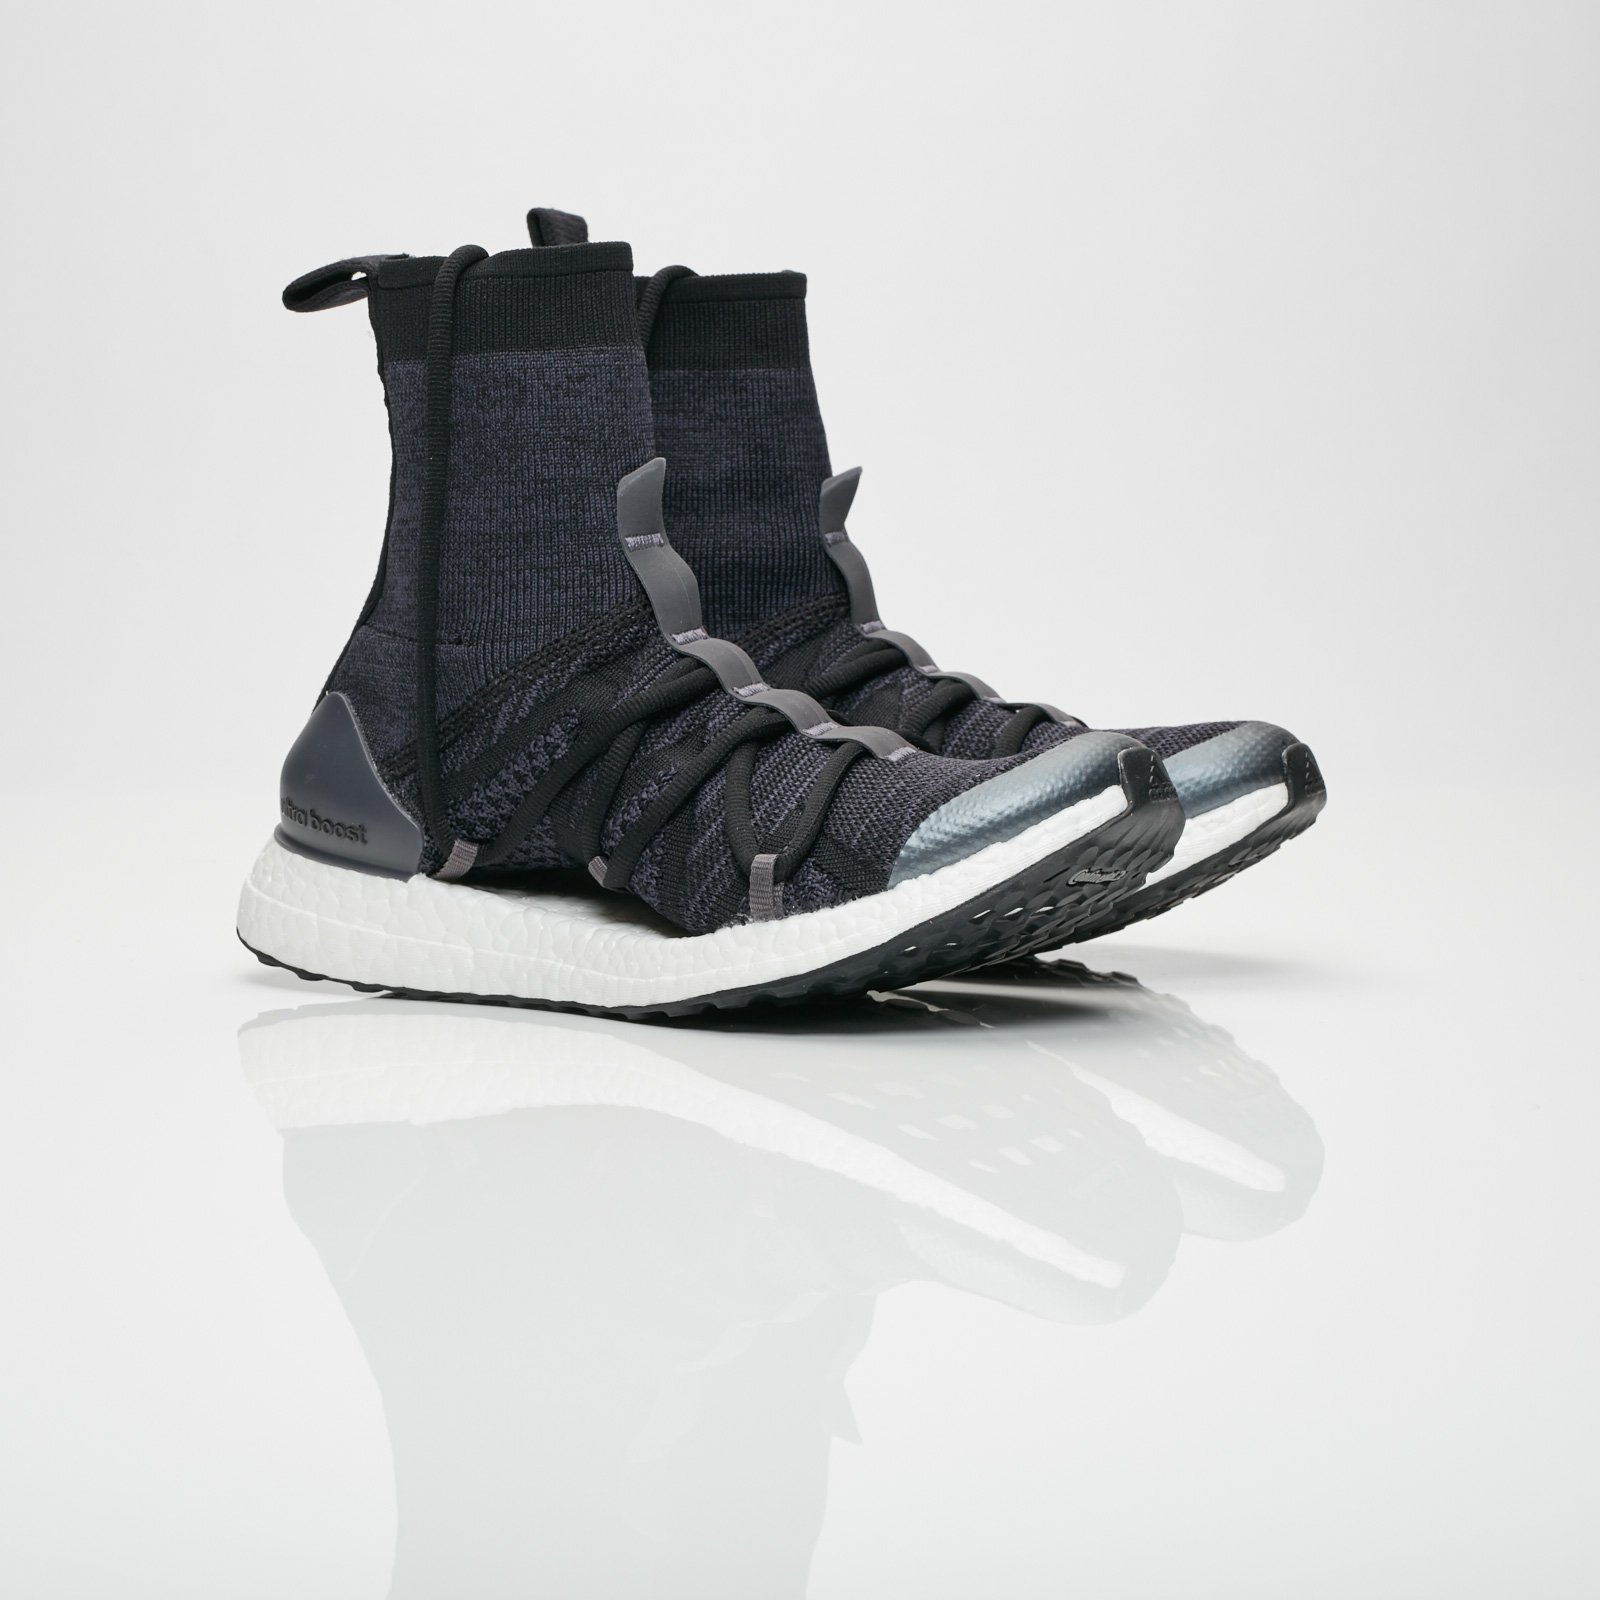 5b7d0add7 adidas UltraBOOST X Mid - Bb6268 - Sneakersnstuff